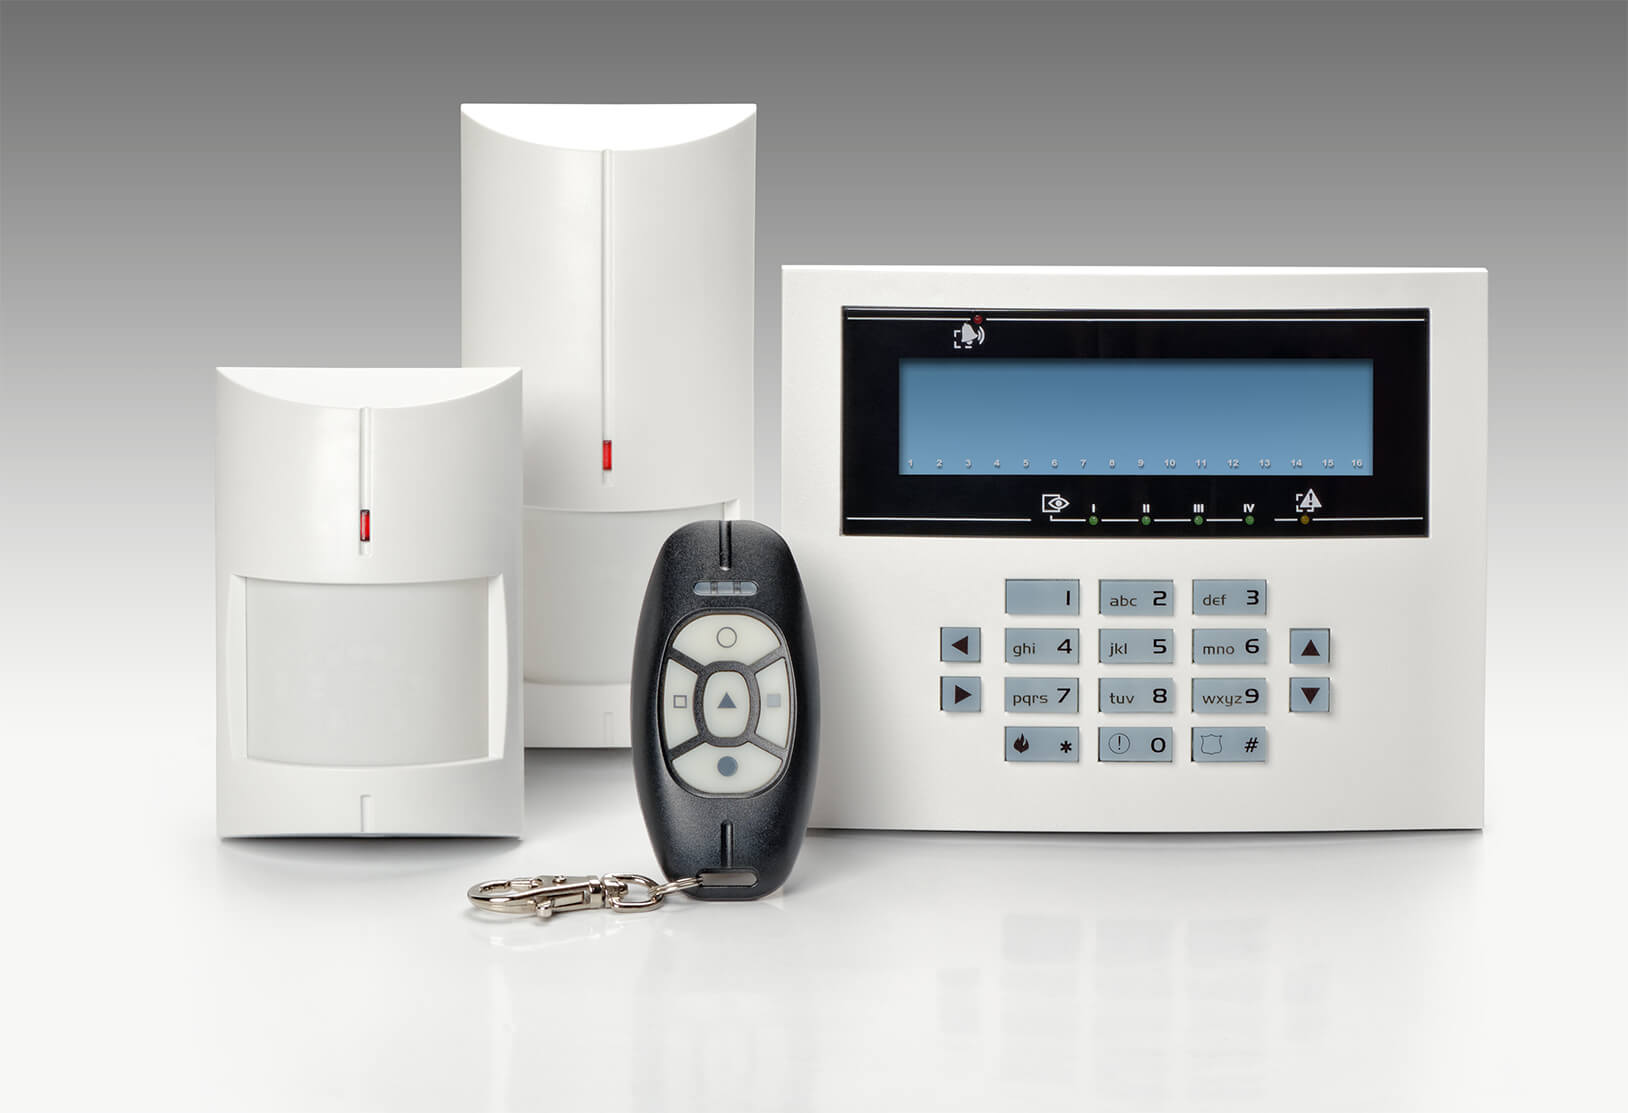 Business & Residential NSI / NACOSS Approved Burglar Alarms In Leyton E15 - Local Leyton E15 security company.Call 02078872244 - Dedicated to Safety & Security. Companies, shops and homes ..